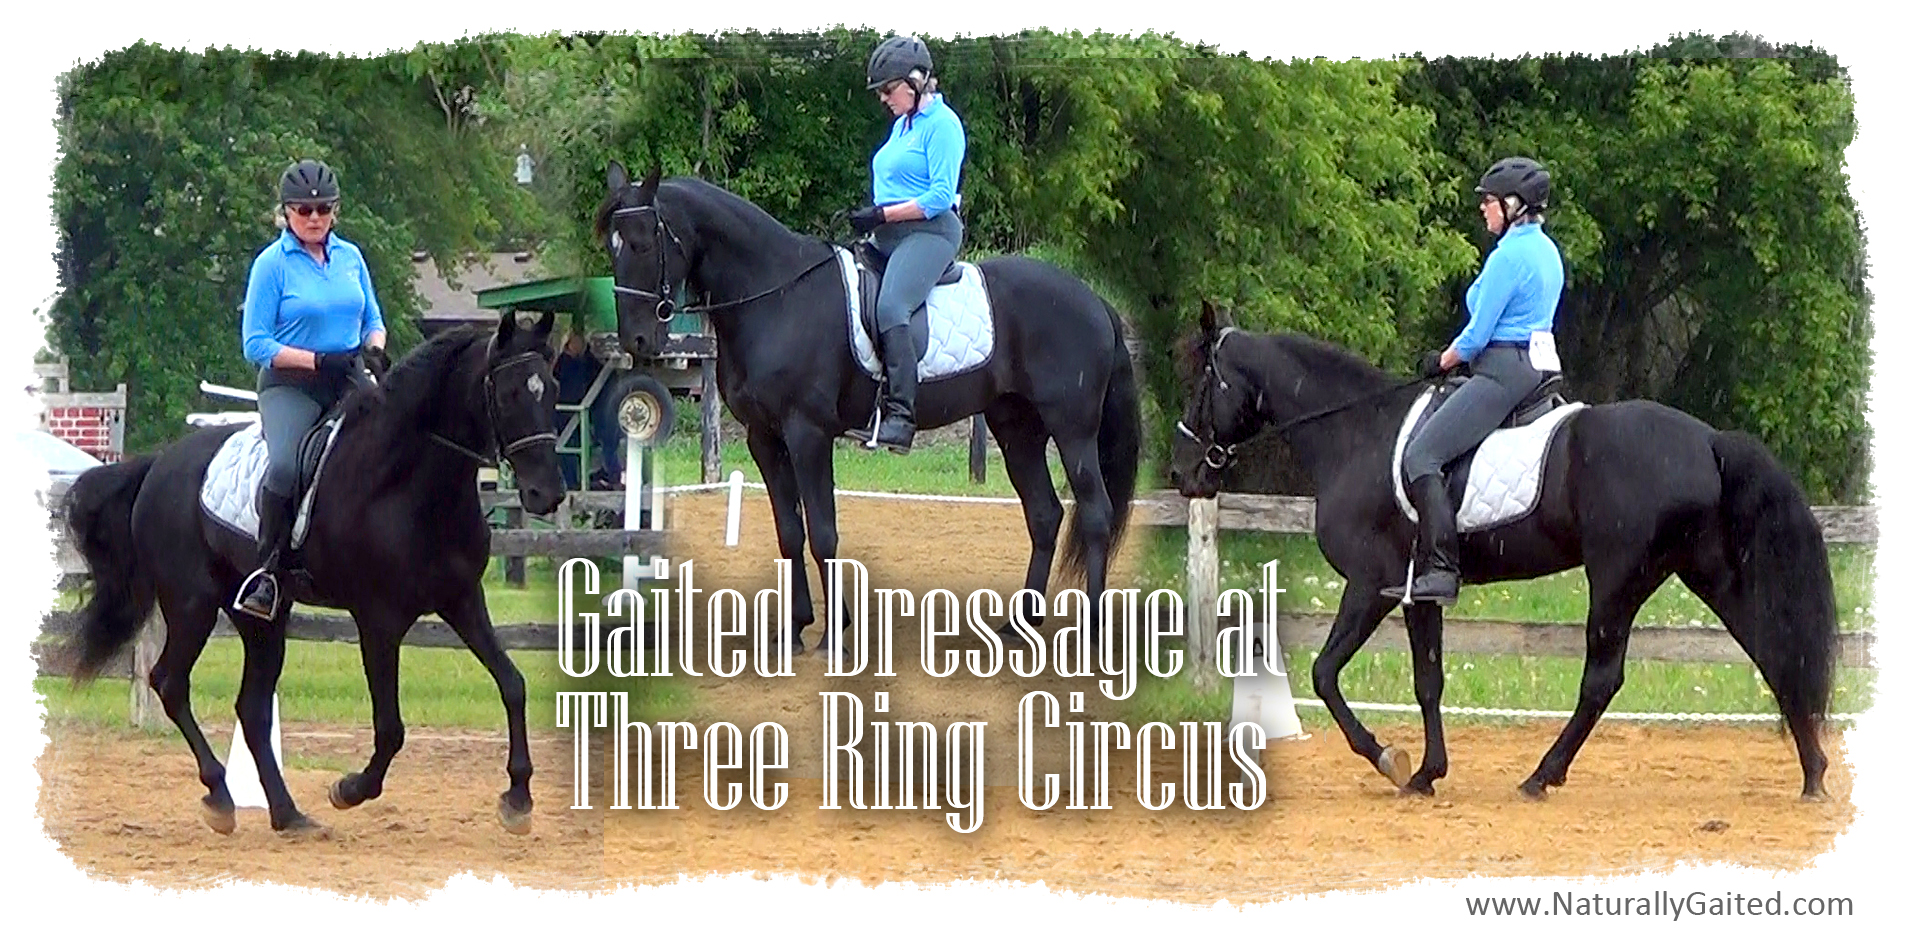 2015 Gaited Dressage at Three Ring Circus